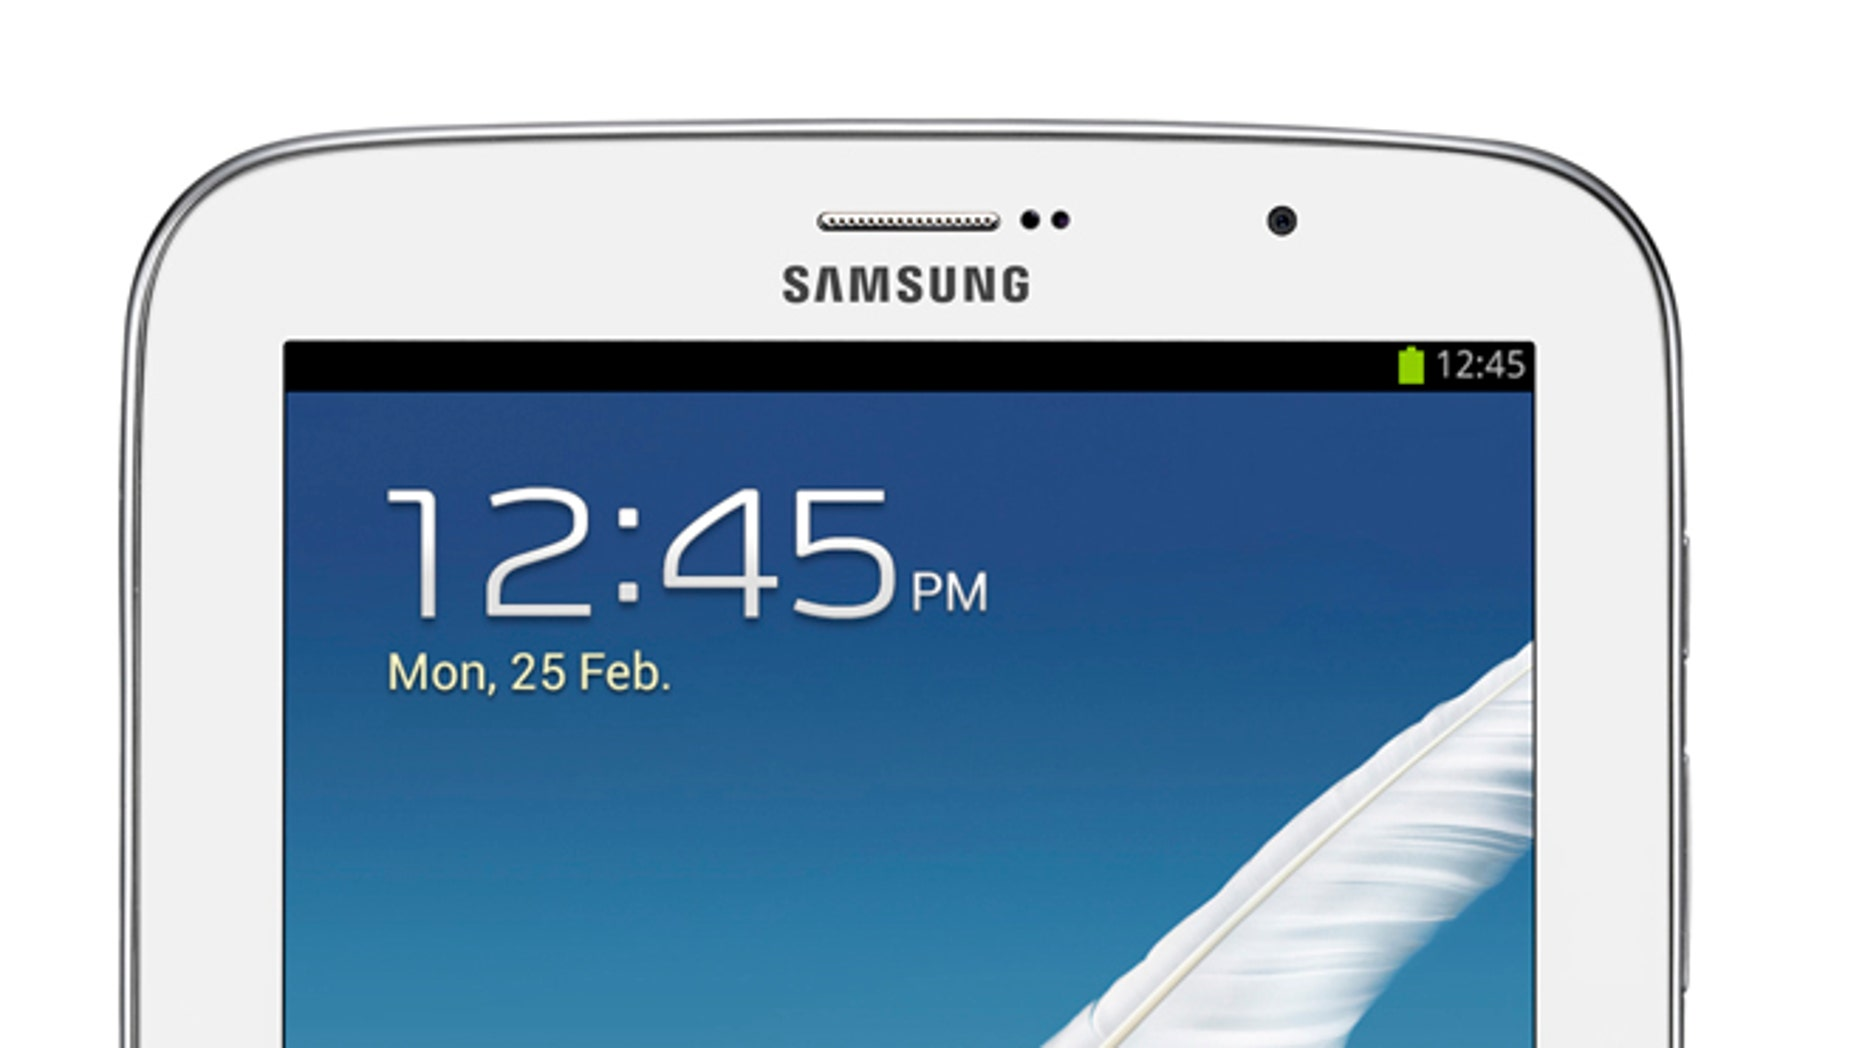 The Samsung Galaxy Note 8, a new tablet from the Korean company that sports a pen for writing on the screen.